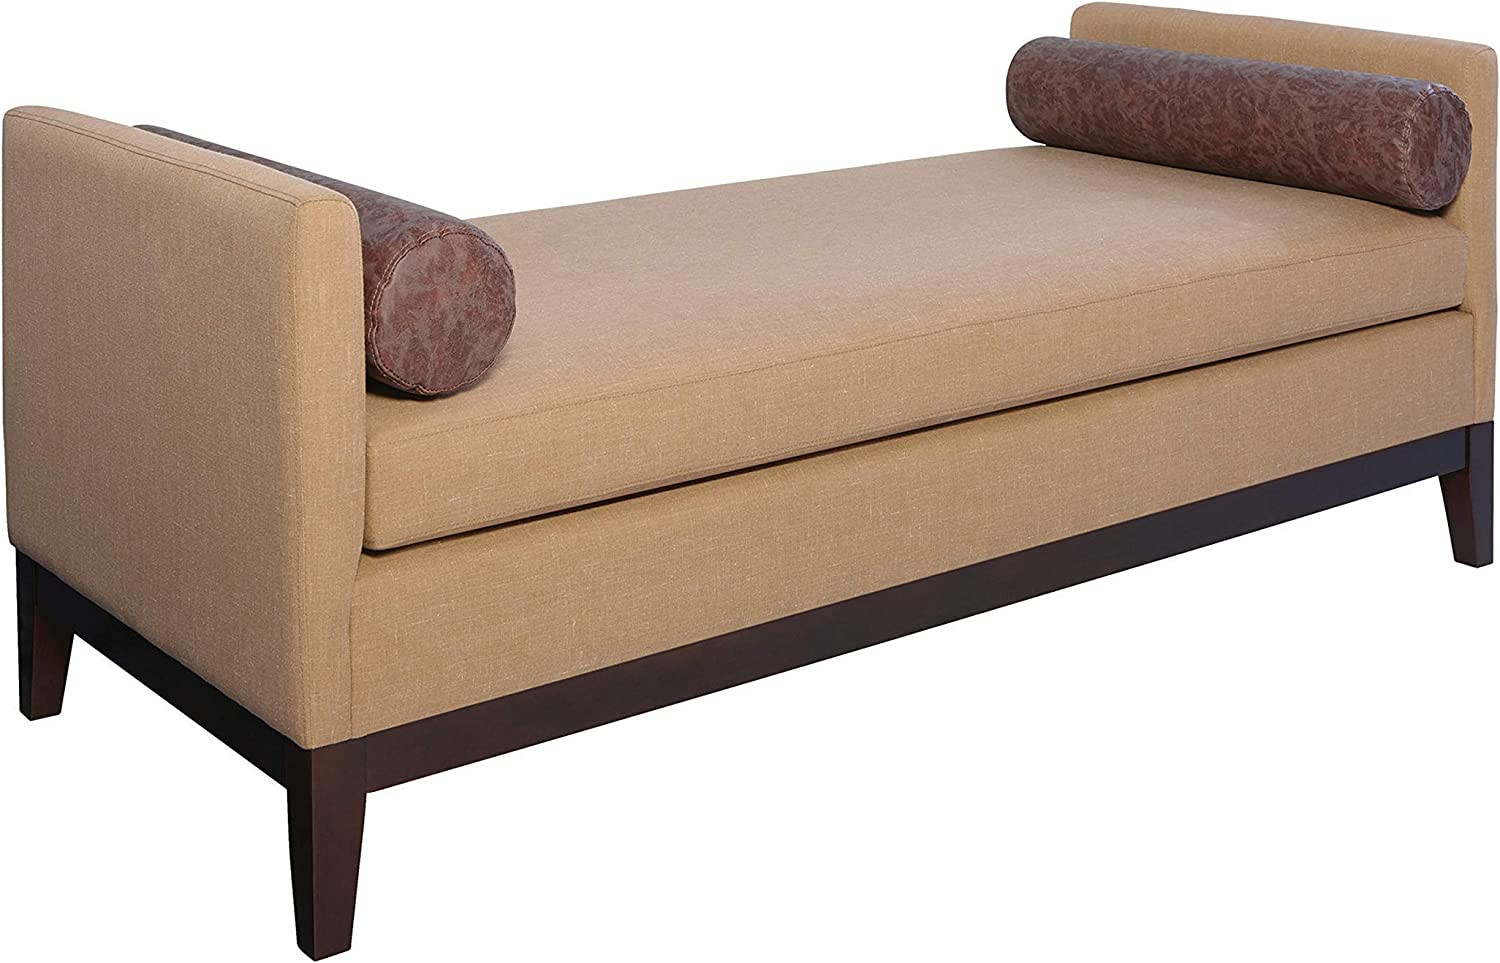 Coaster Home Furnishings Upholstered Wooden Legs Amber and Brown Bench, 68.5